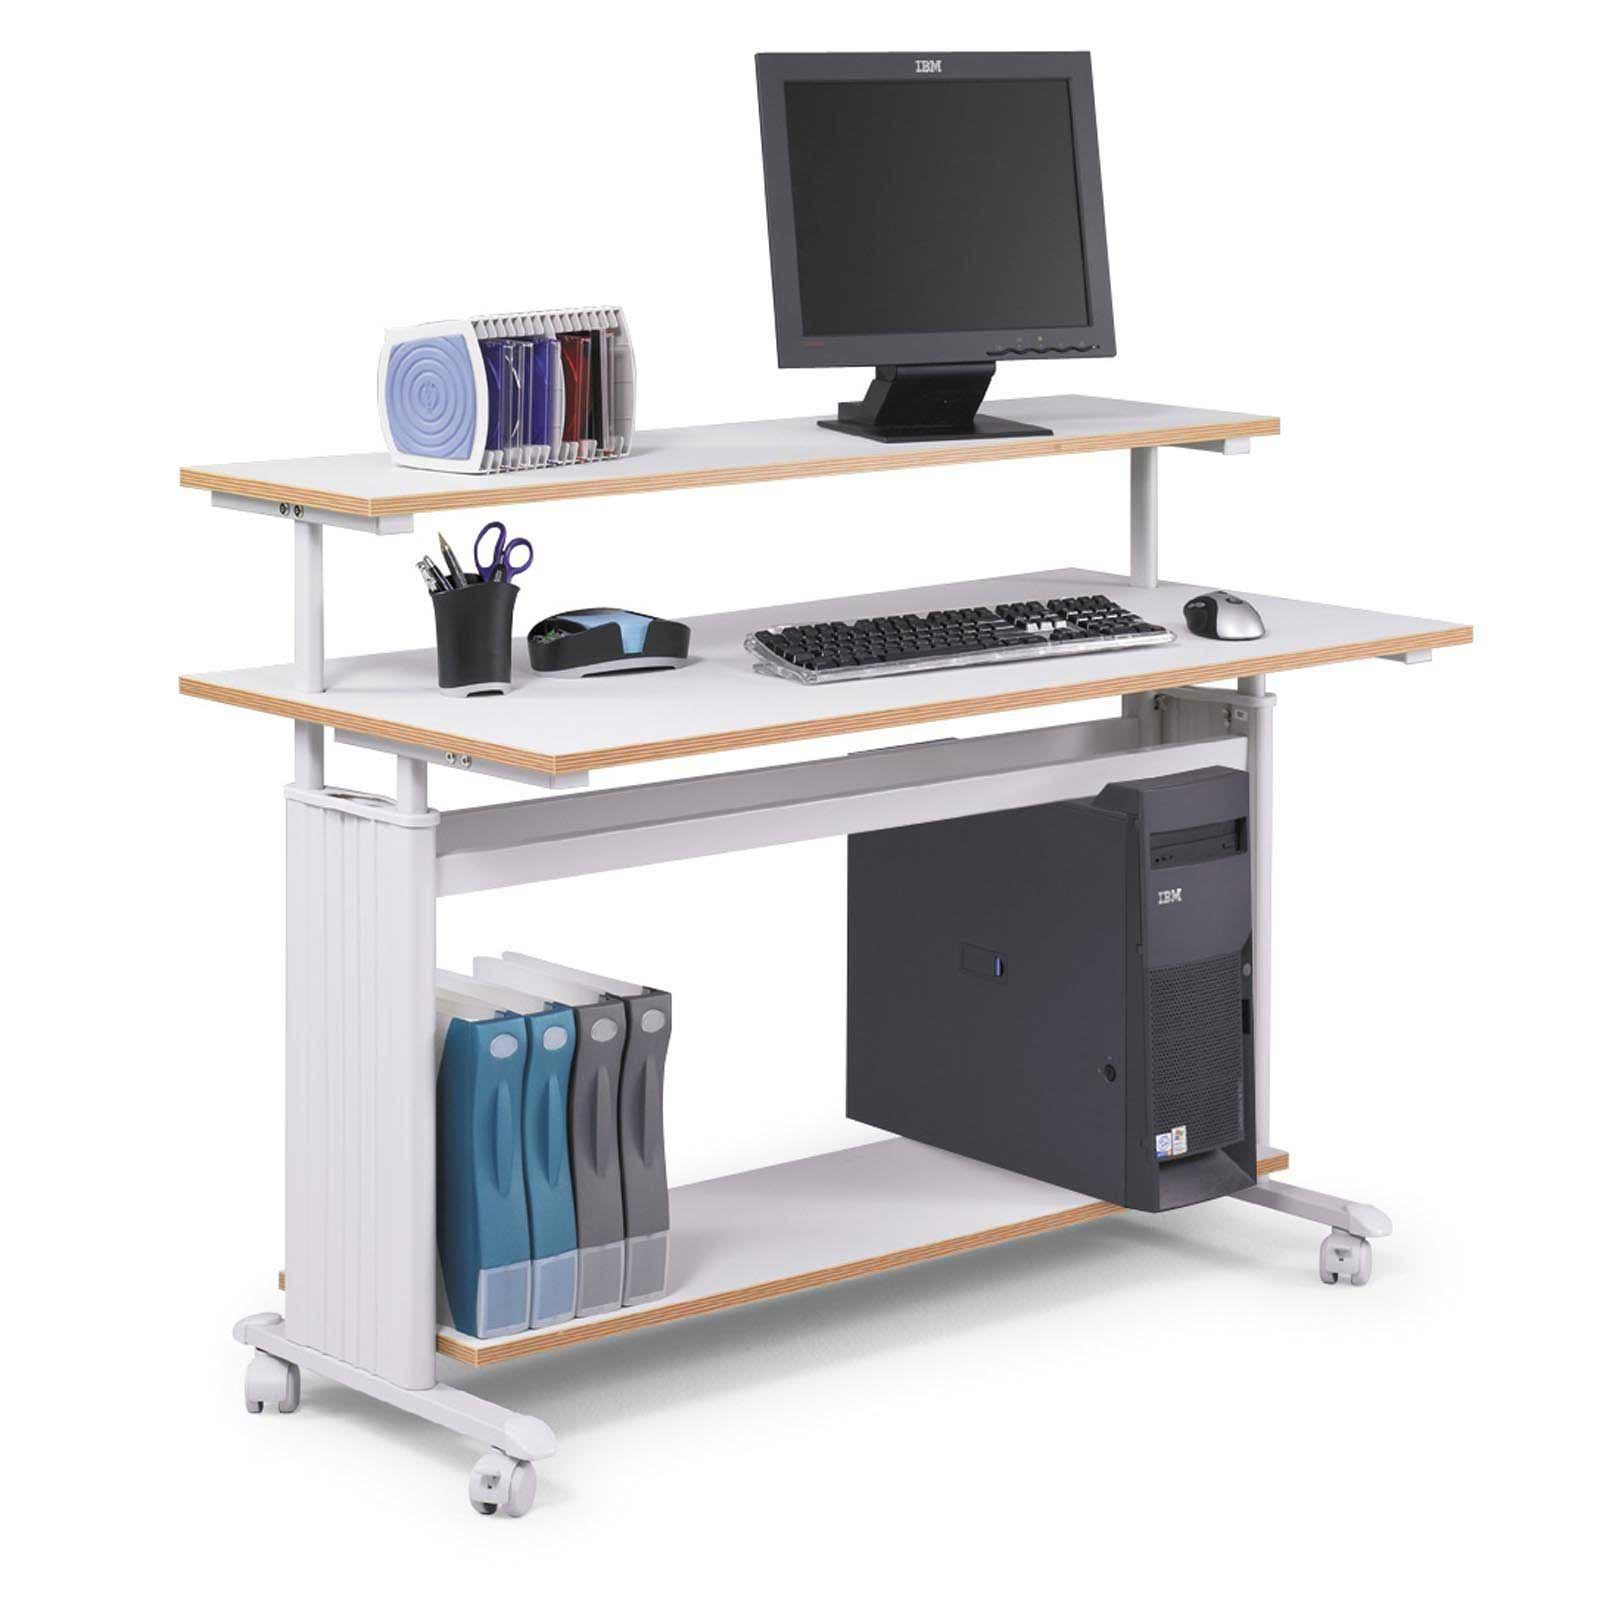 workstation dp style desk pc simple office computer for table com products laptop modern study tribesigns amazon home black